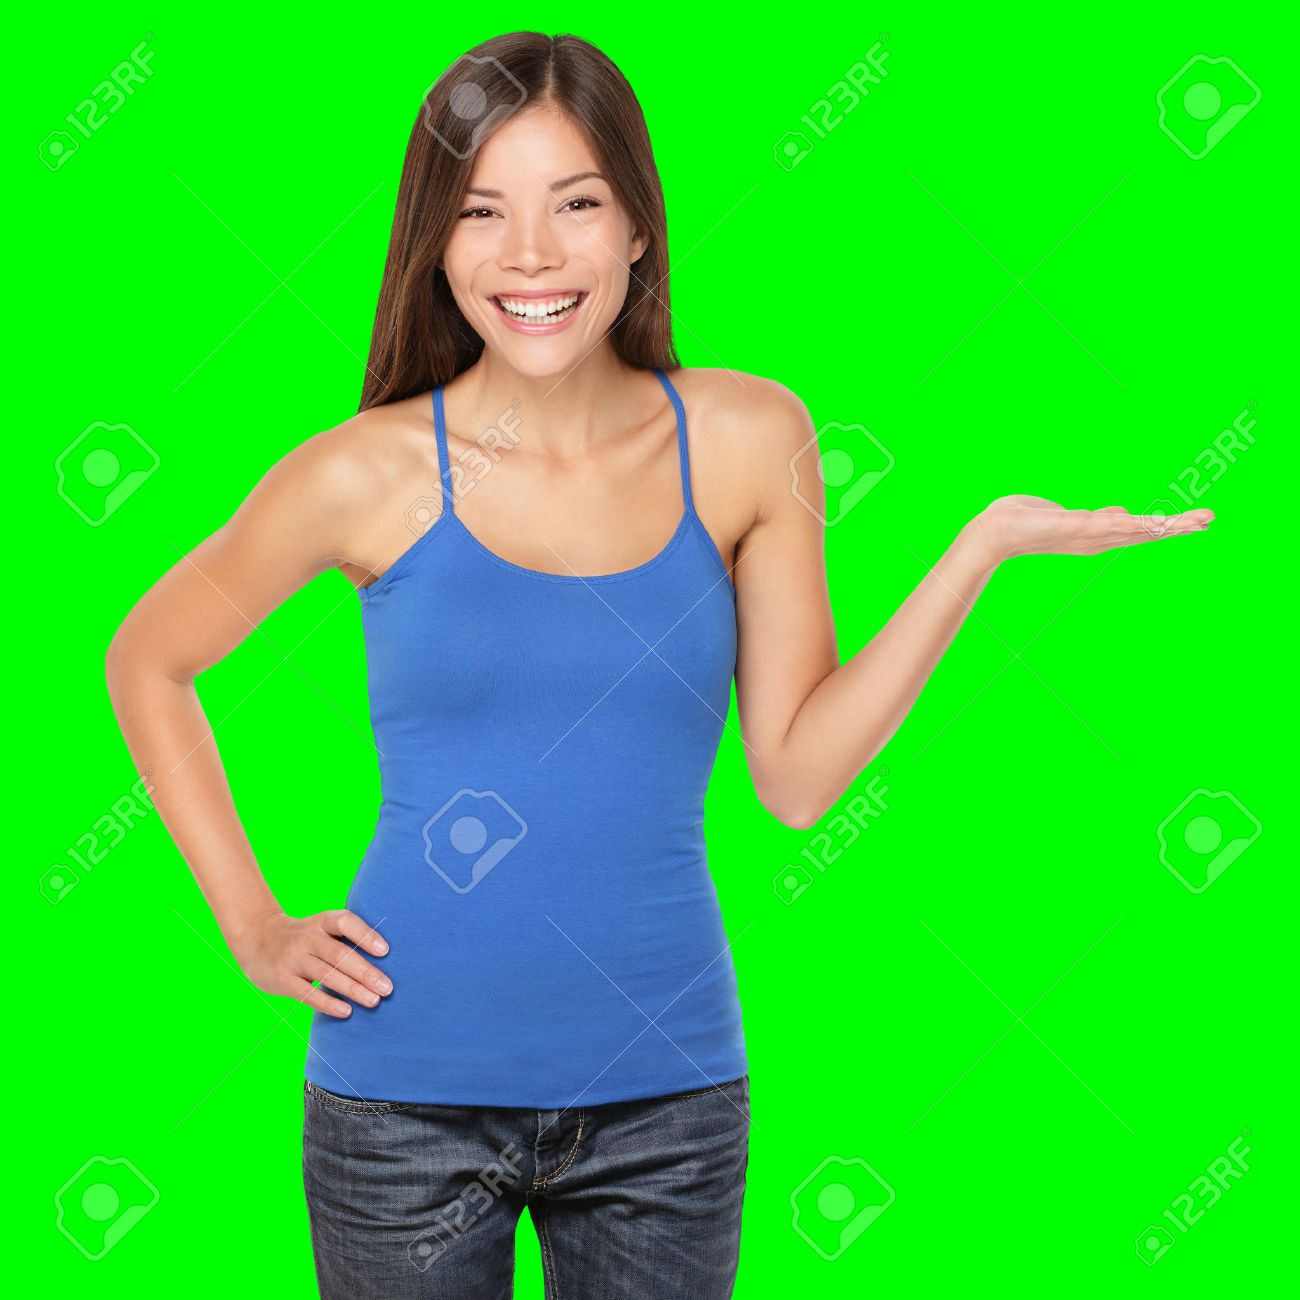 Woman showing your product or message smiling happy Isolated on green screen chroma key background. Beautiful multi-racial girl in blue tank top showing open hand palm. Standard-Bild - 39266670